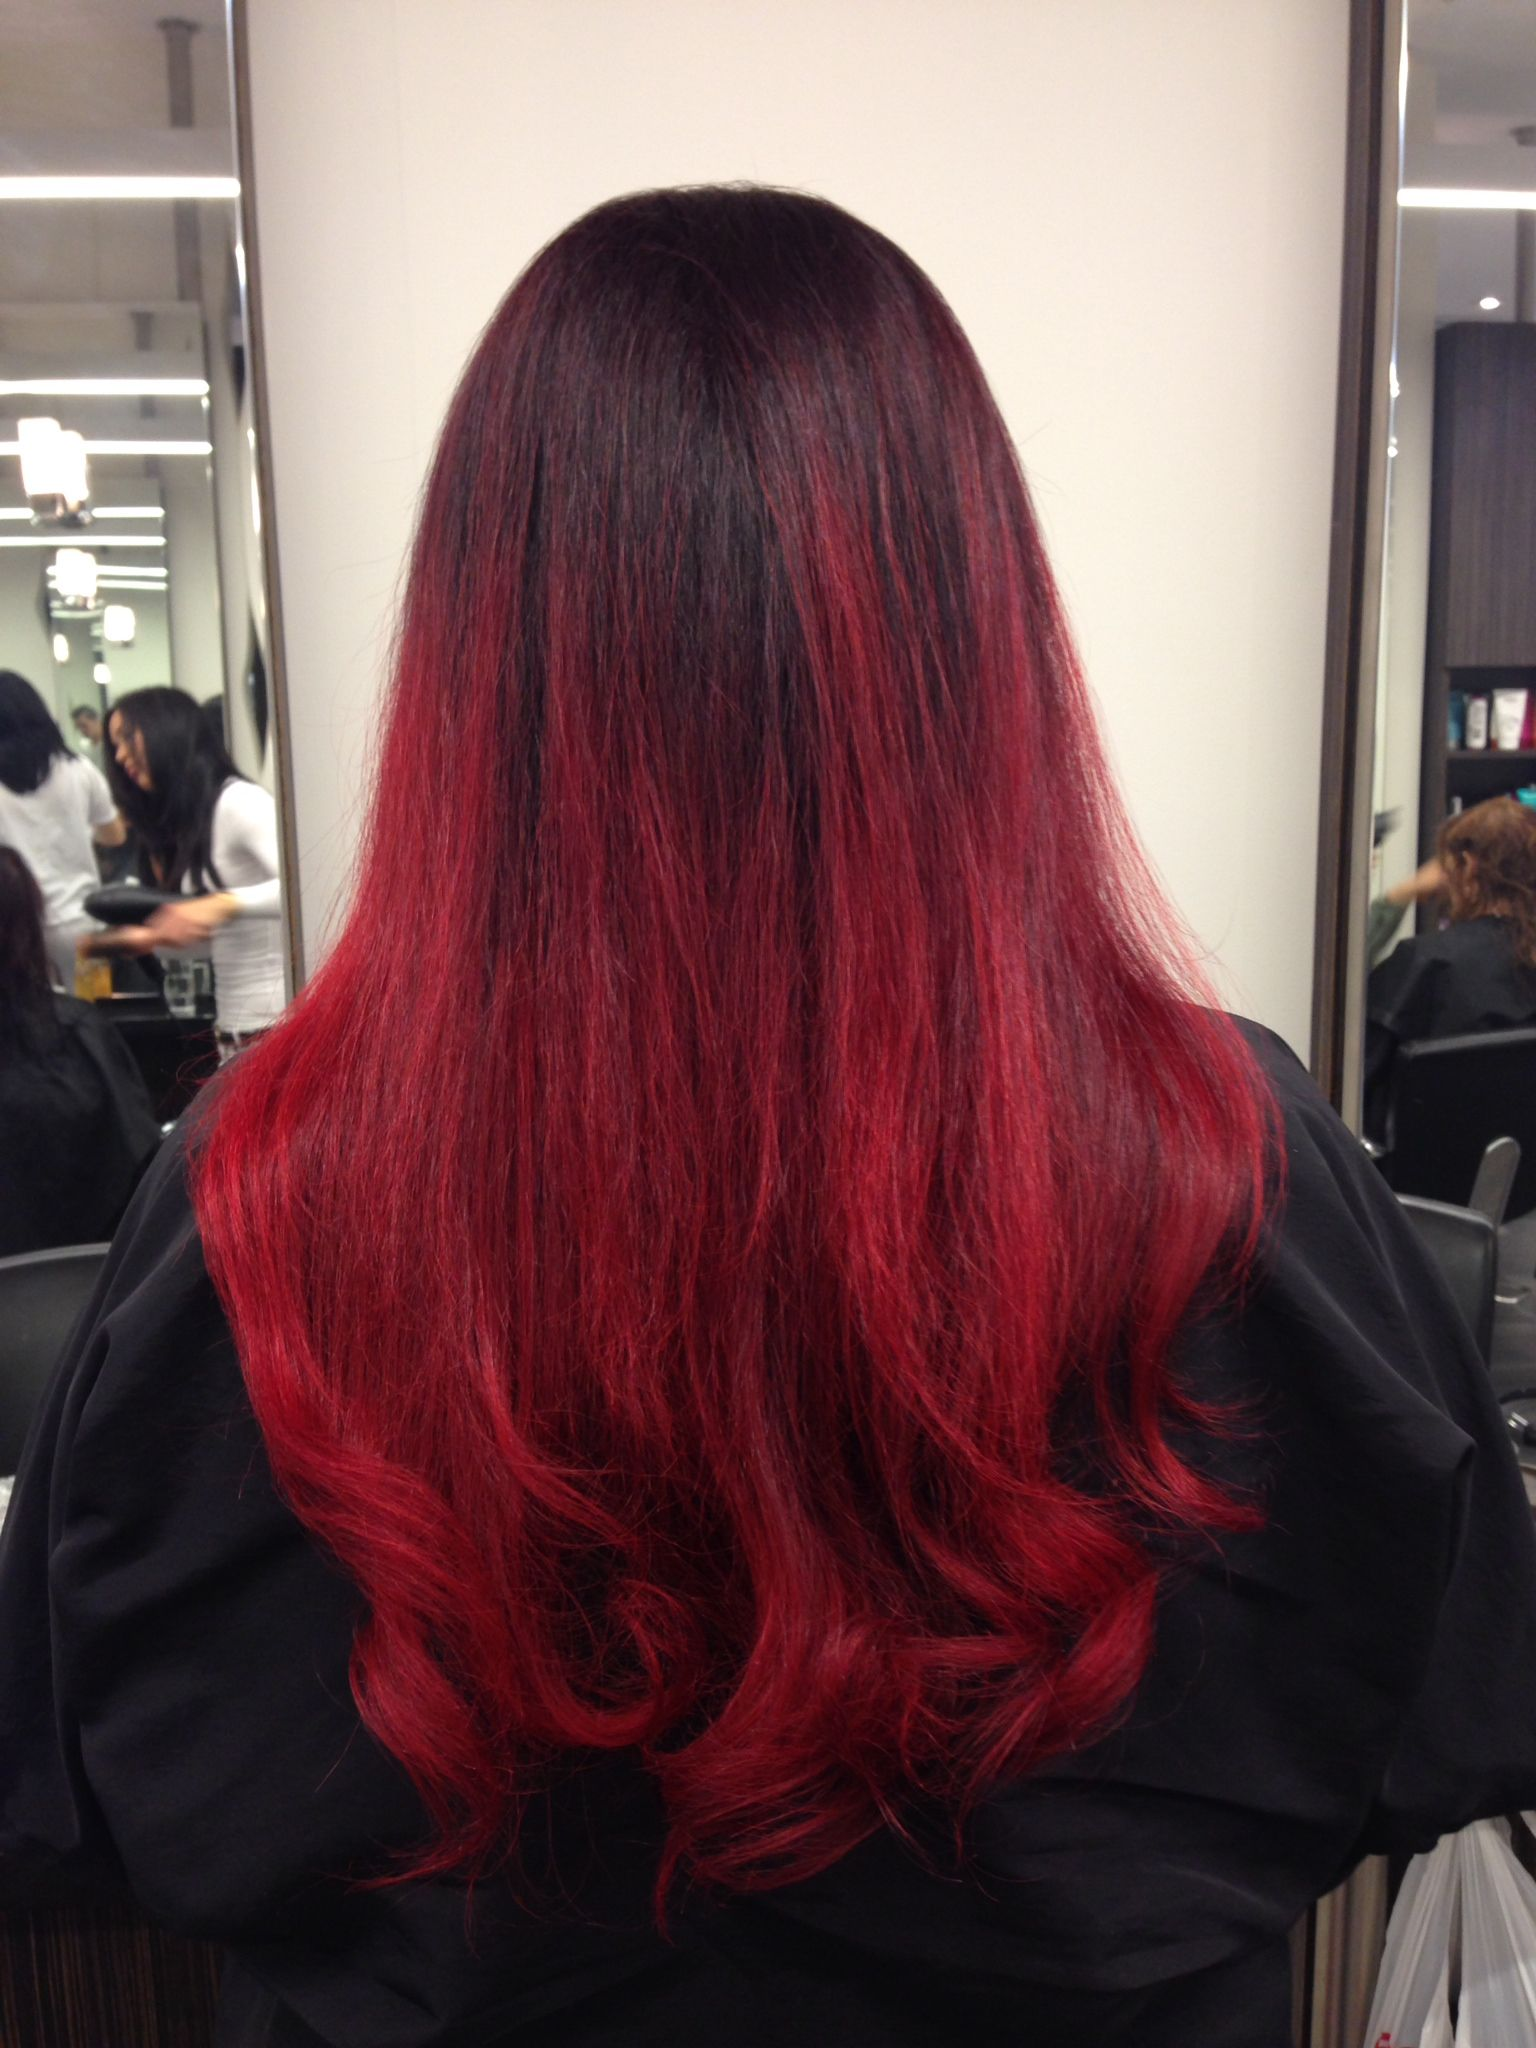 Pin By Angie Vargas On Our Work Hair Styles Red Ombre Hair Ombre Hair